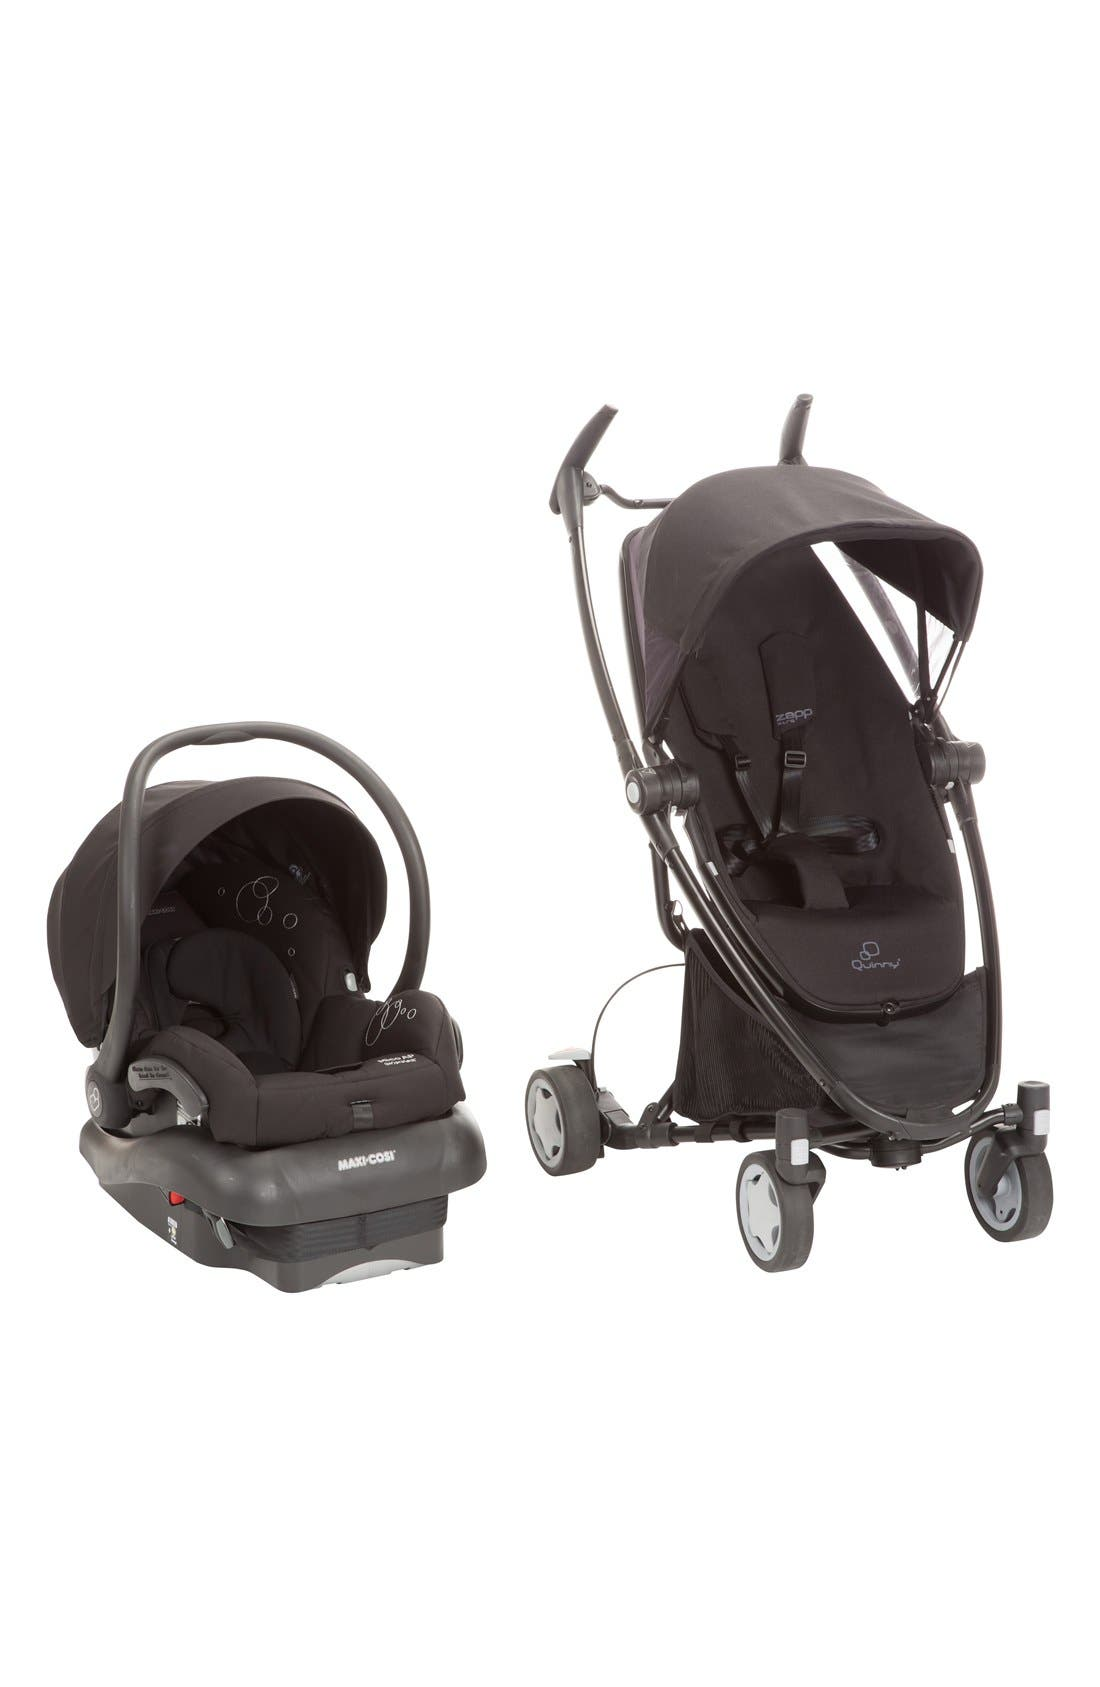 Main Image - Maxi-Cosi® 'Mico Air Protect™' Car Seat & Quinny® 'Zapp Xtra™' Stroller Travel System